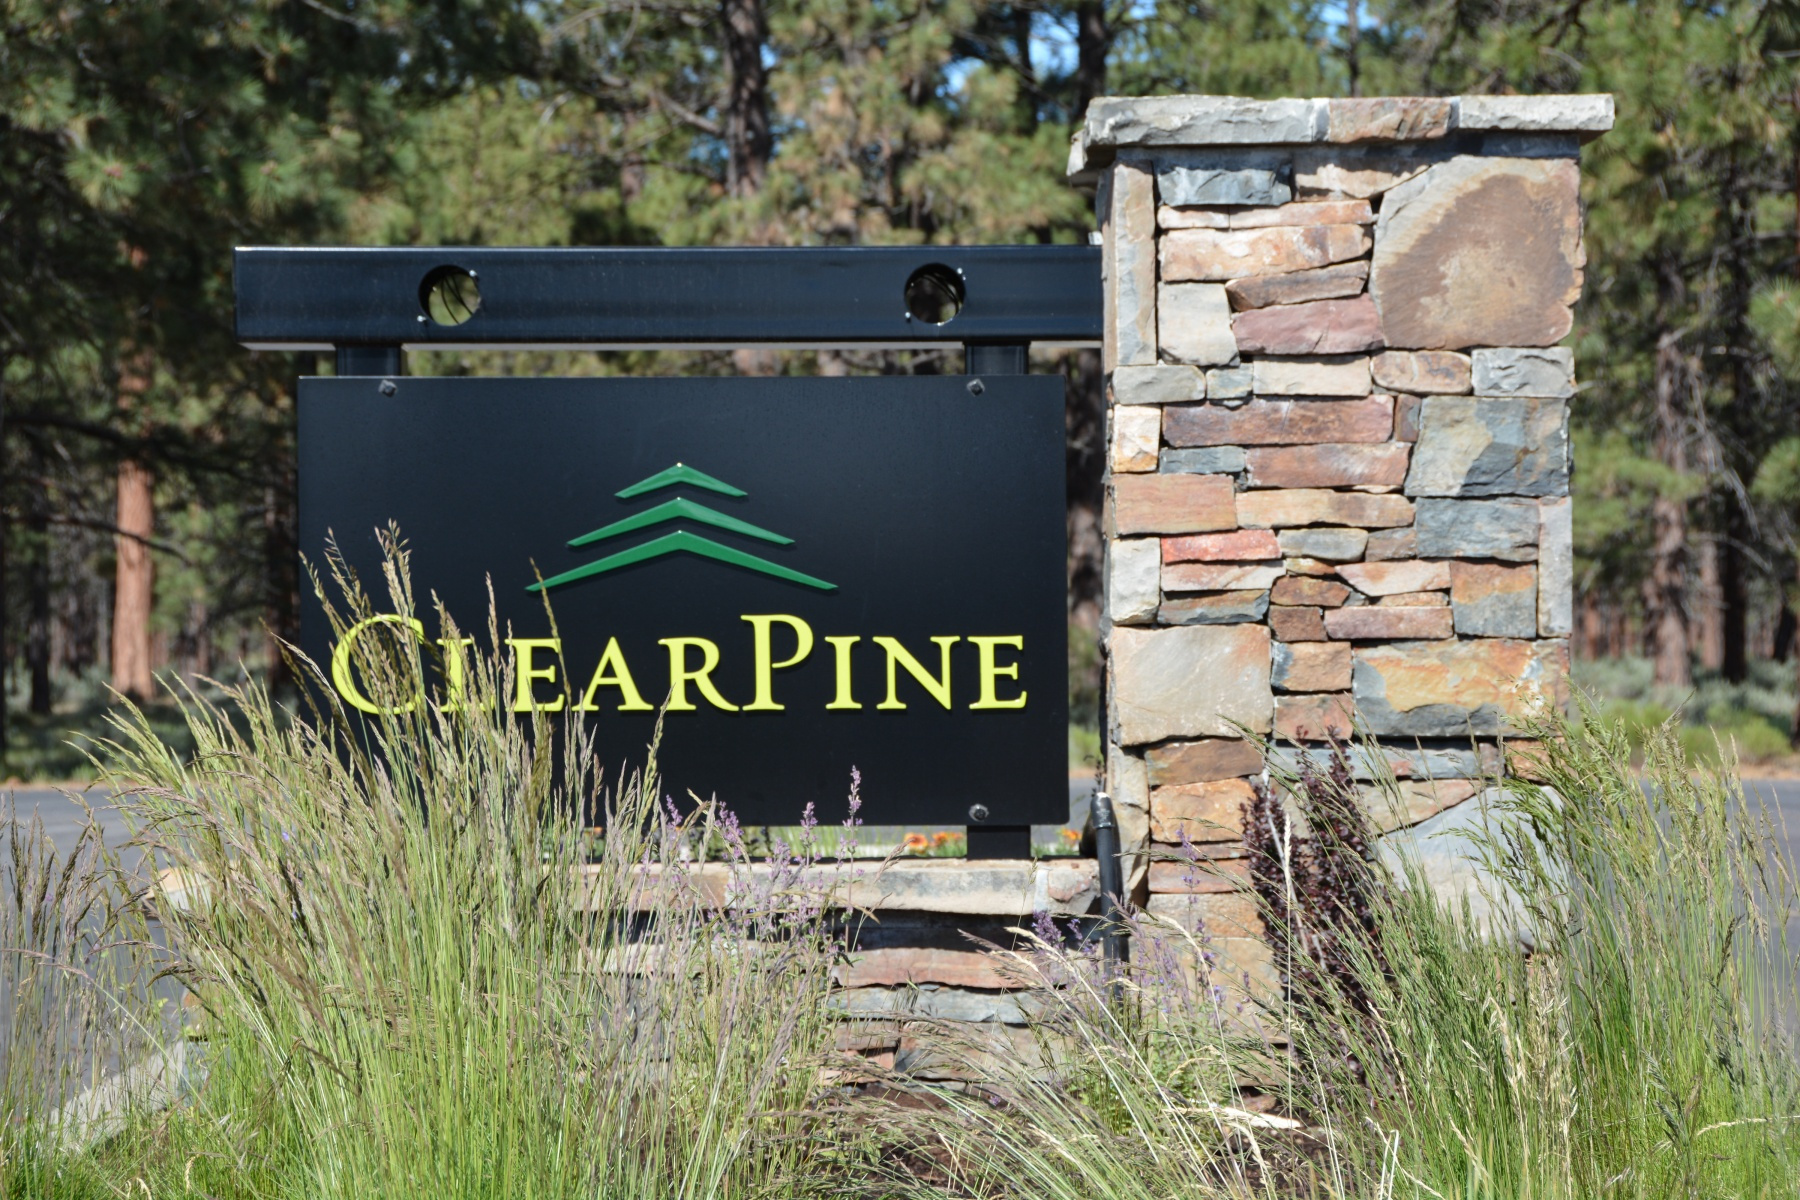 Land for Sale at Flat Build Ready Lot in ClearPine! 0 Heising Dr Lot 17 Sisters, Oregon, 97759 United States